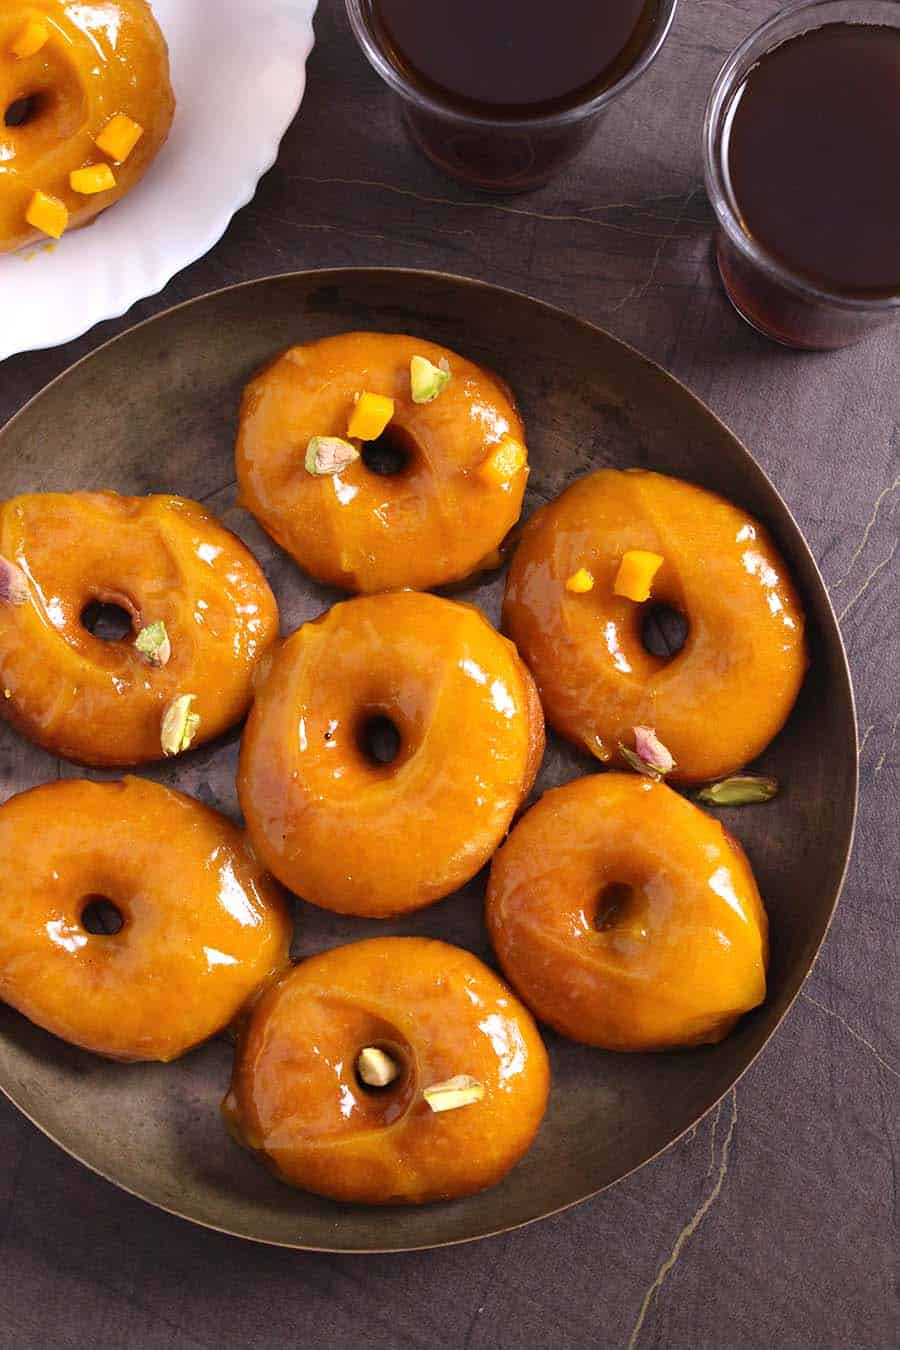 Mango glaze doughnuts (donuts) with mango glaze, Desserts for summer, thanksgiving, Christmas, holidays. Baked, fried or sir fryer donuts or doughnuts